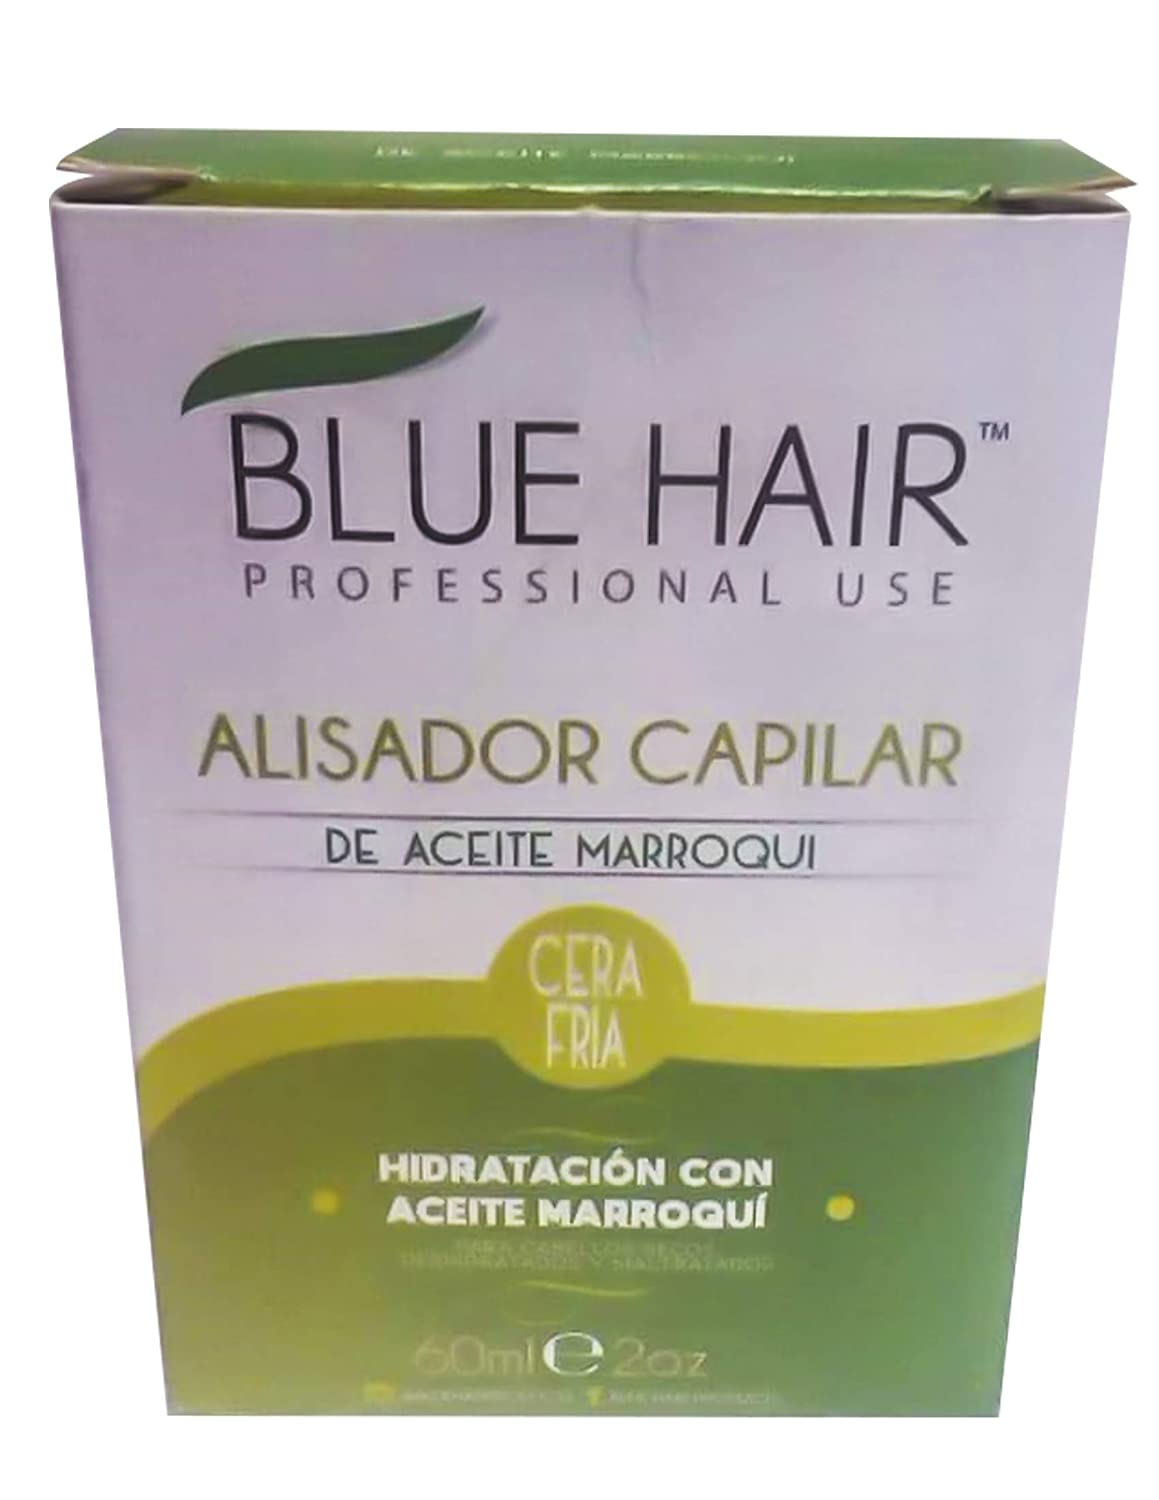 Amazon.com : HAIR SURGERY BLUE HAIR CERA FRIA (SHAMPO-TREATMENT) 4 OZ : Everything Else